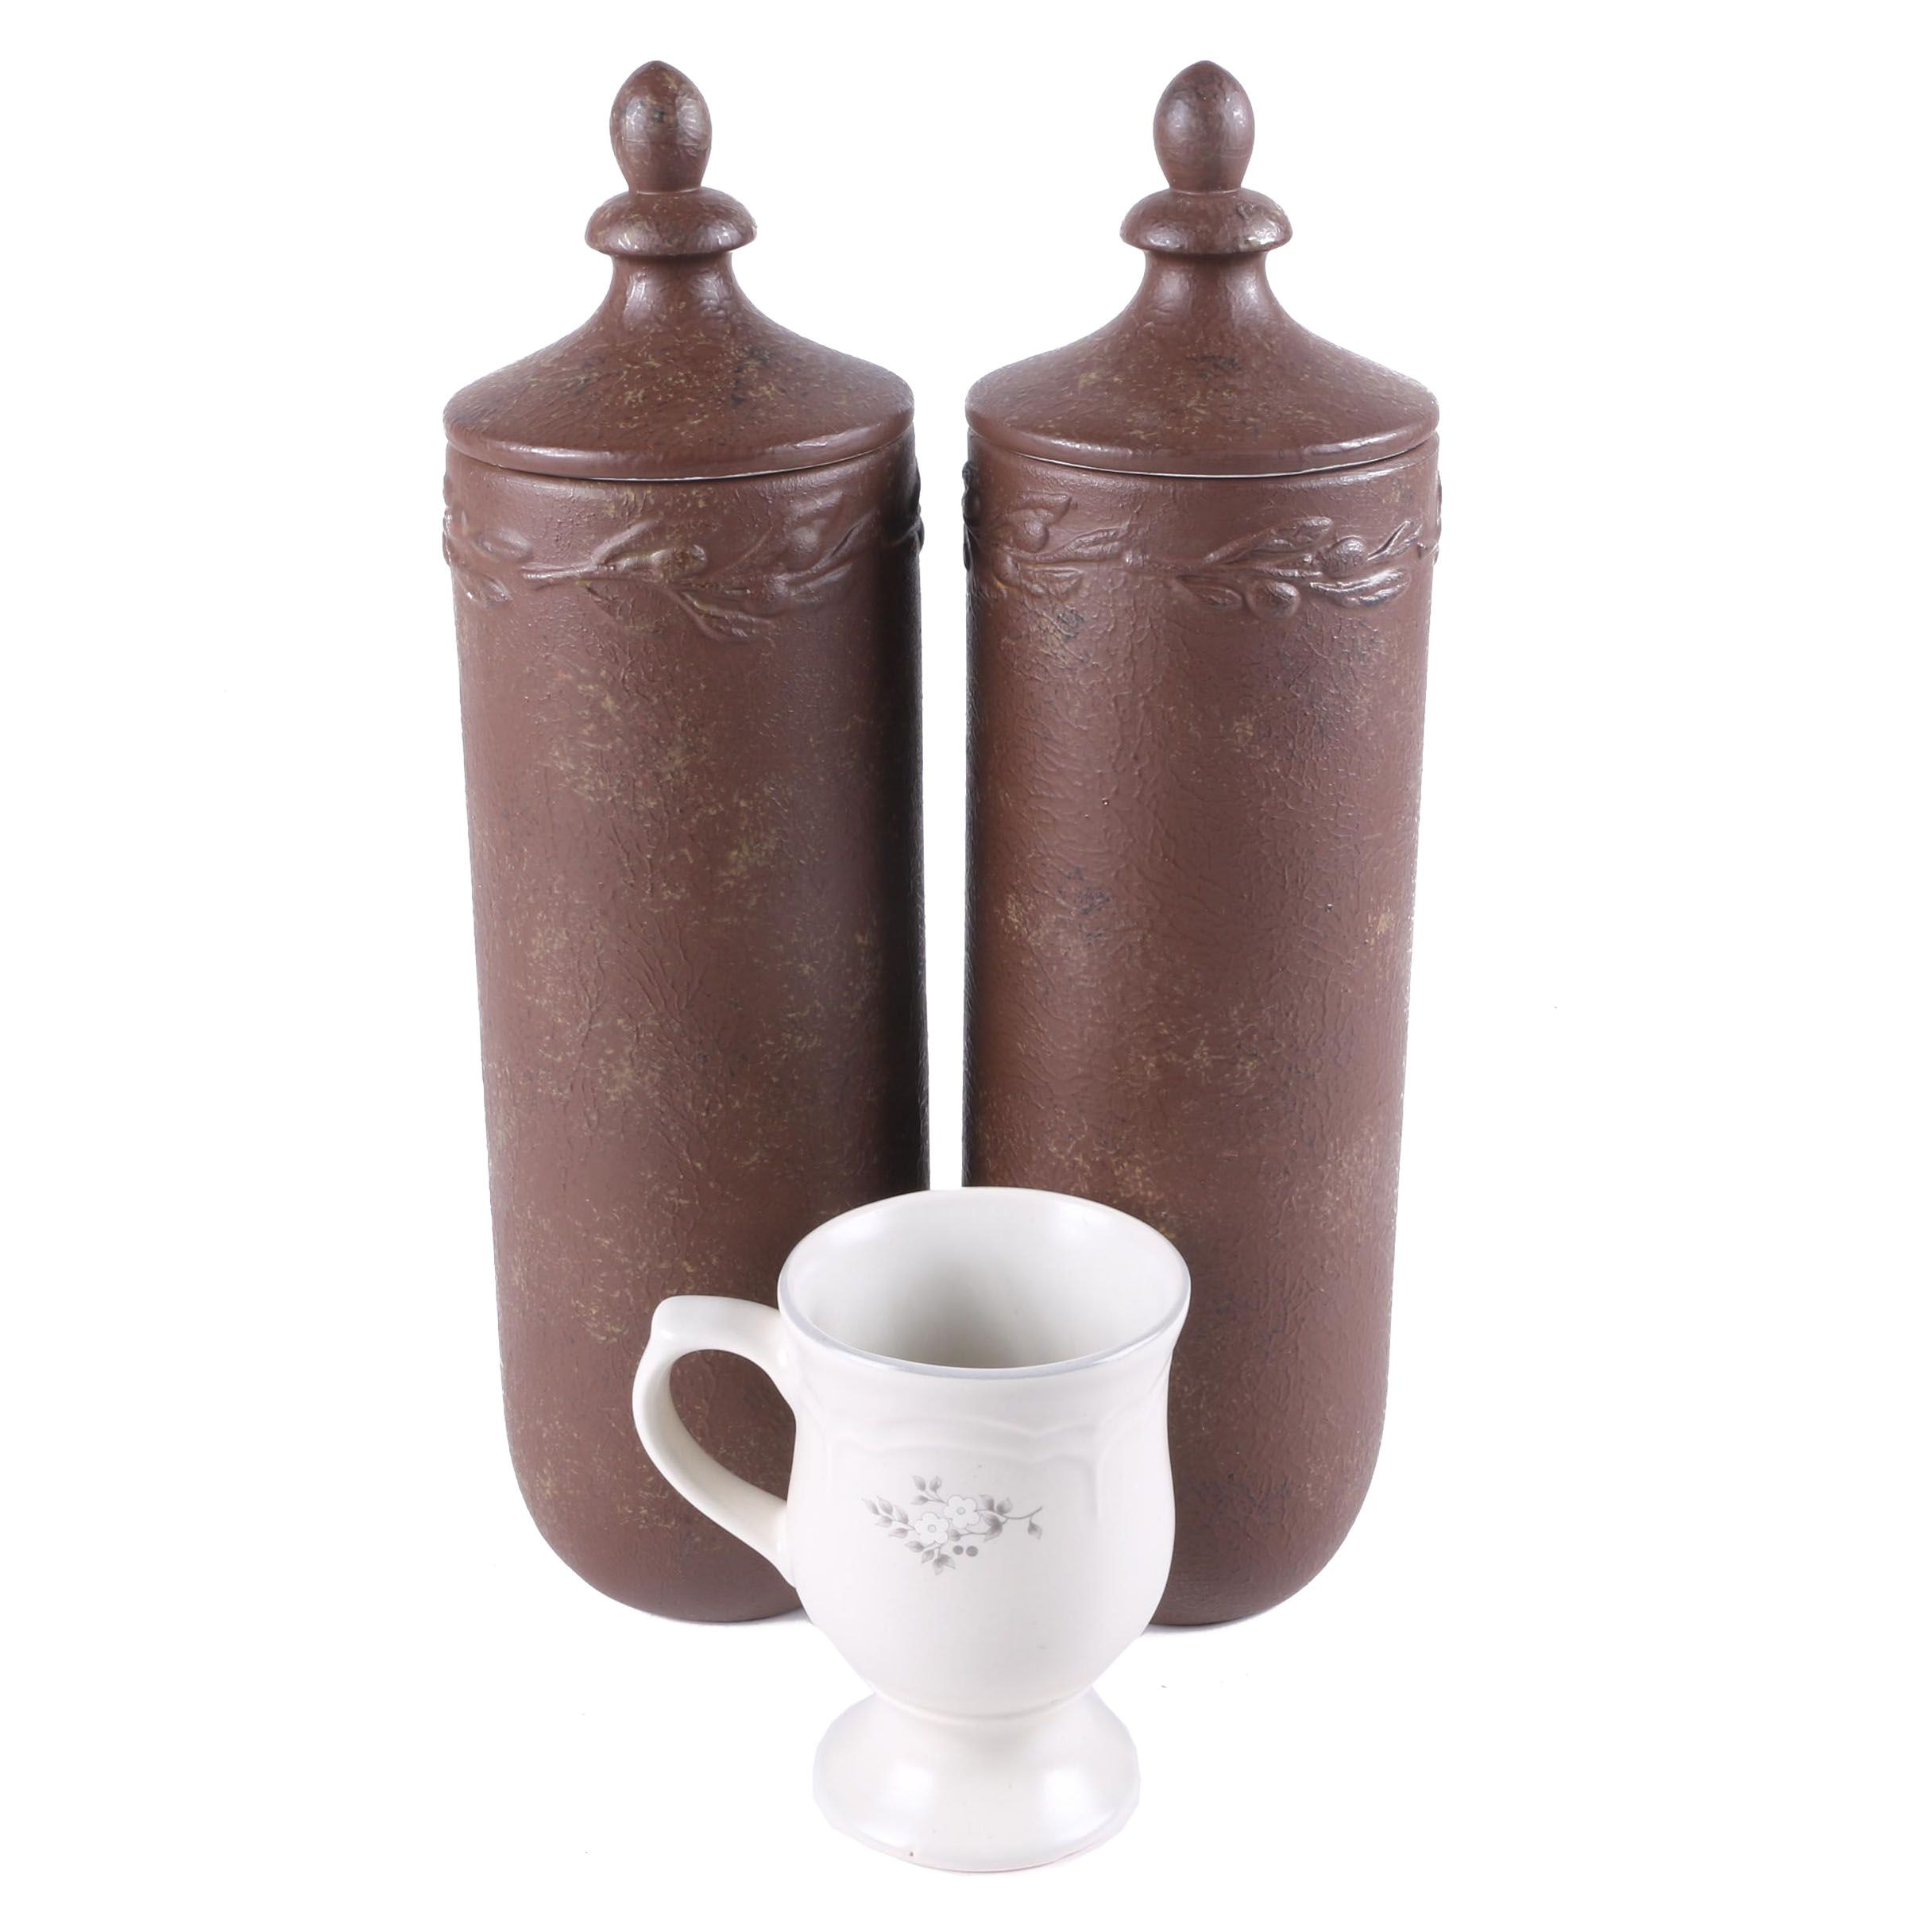 Pair of Lidded Canisters and Coffee Cup